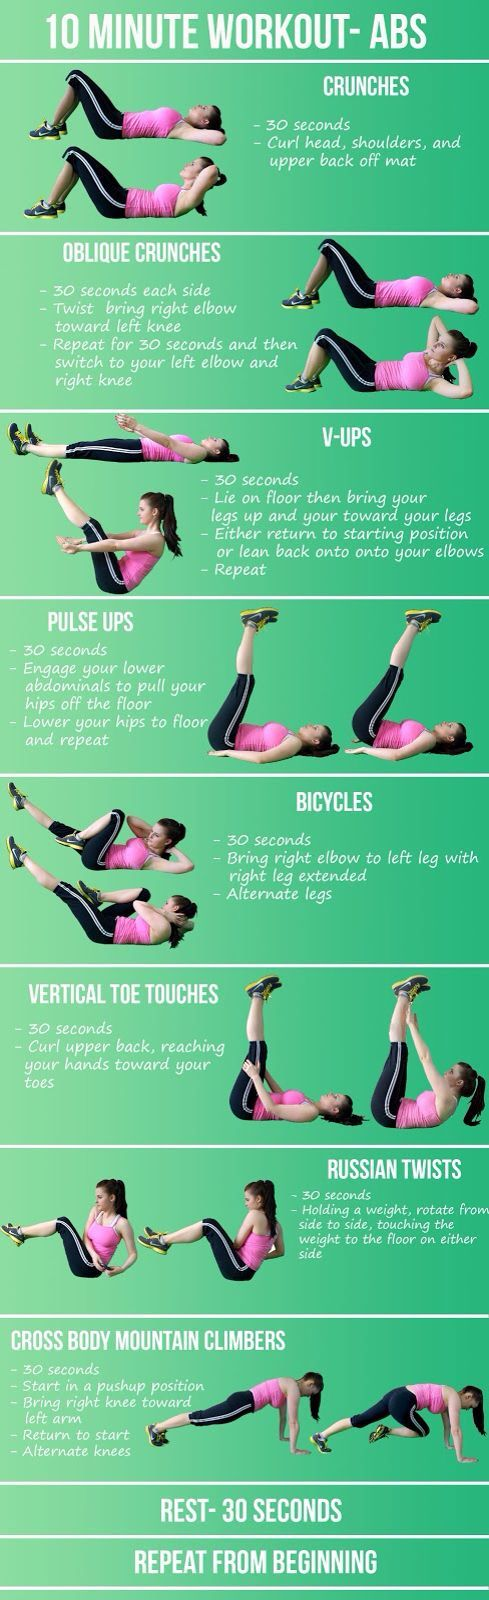 4 minutes Abs Workout Challenge that is Easy and fast way to build abs Quickly.This is most easy and useful Abs Workout for Perfect abs,This is Easy to do http://fitnesschap.com/4-minutes-abs-workout-challenge/